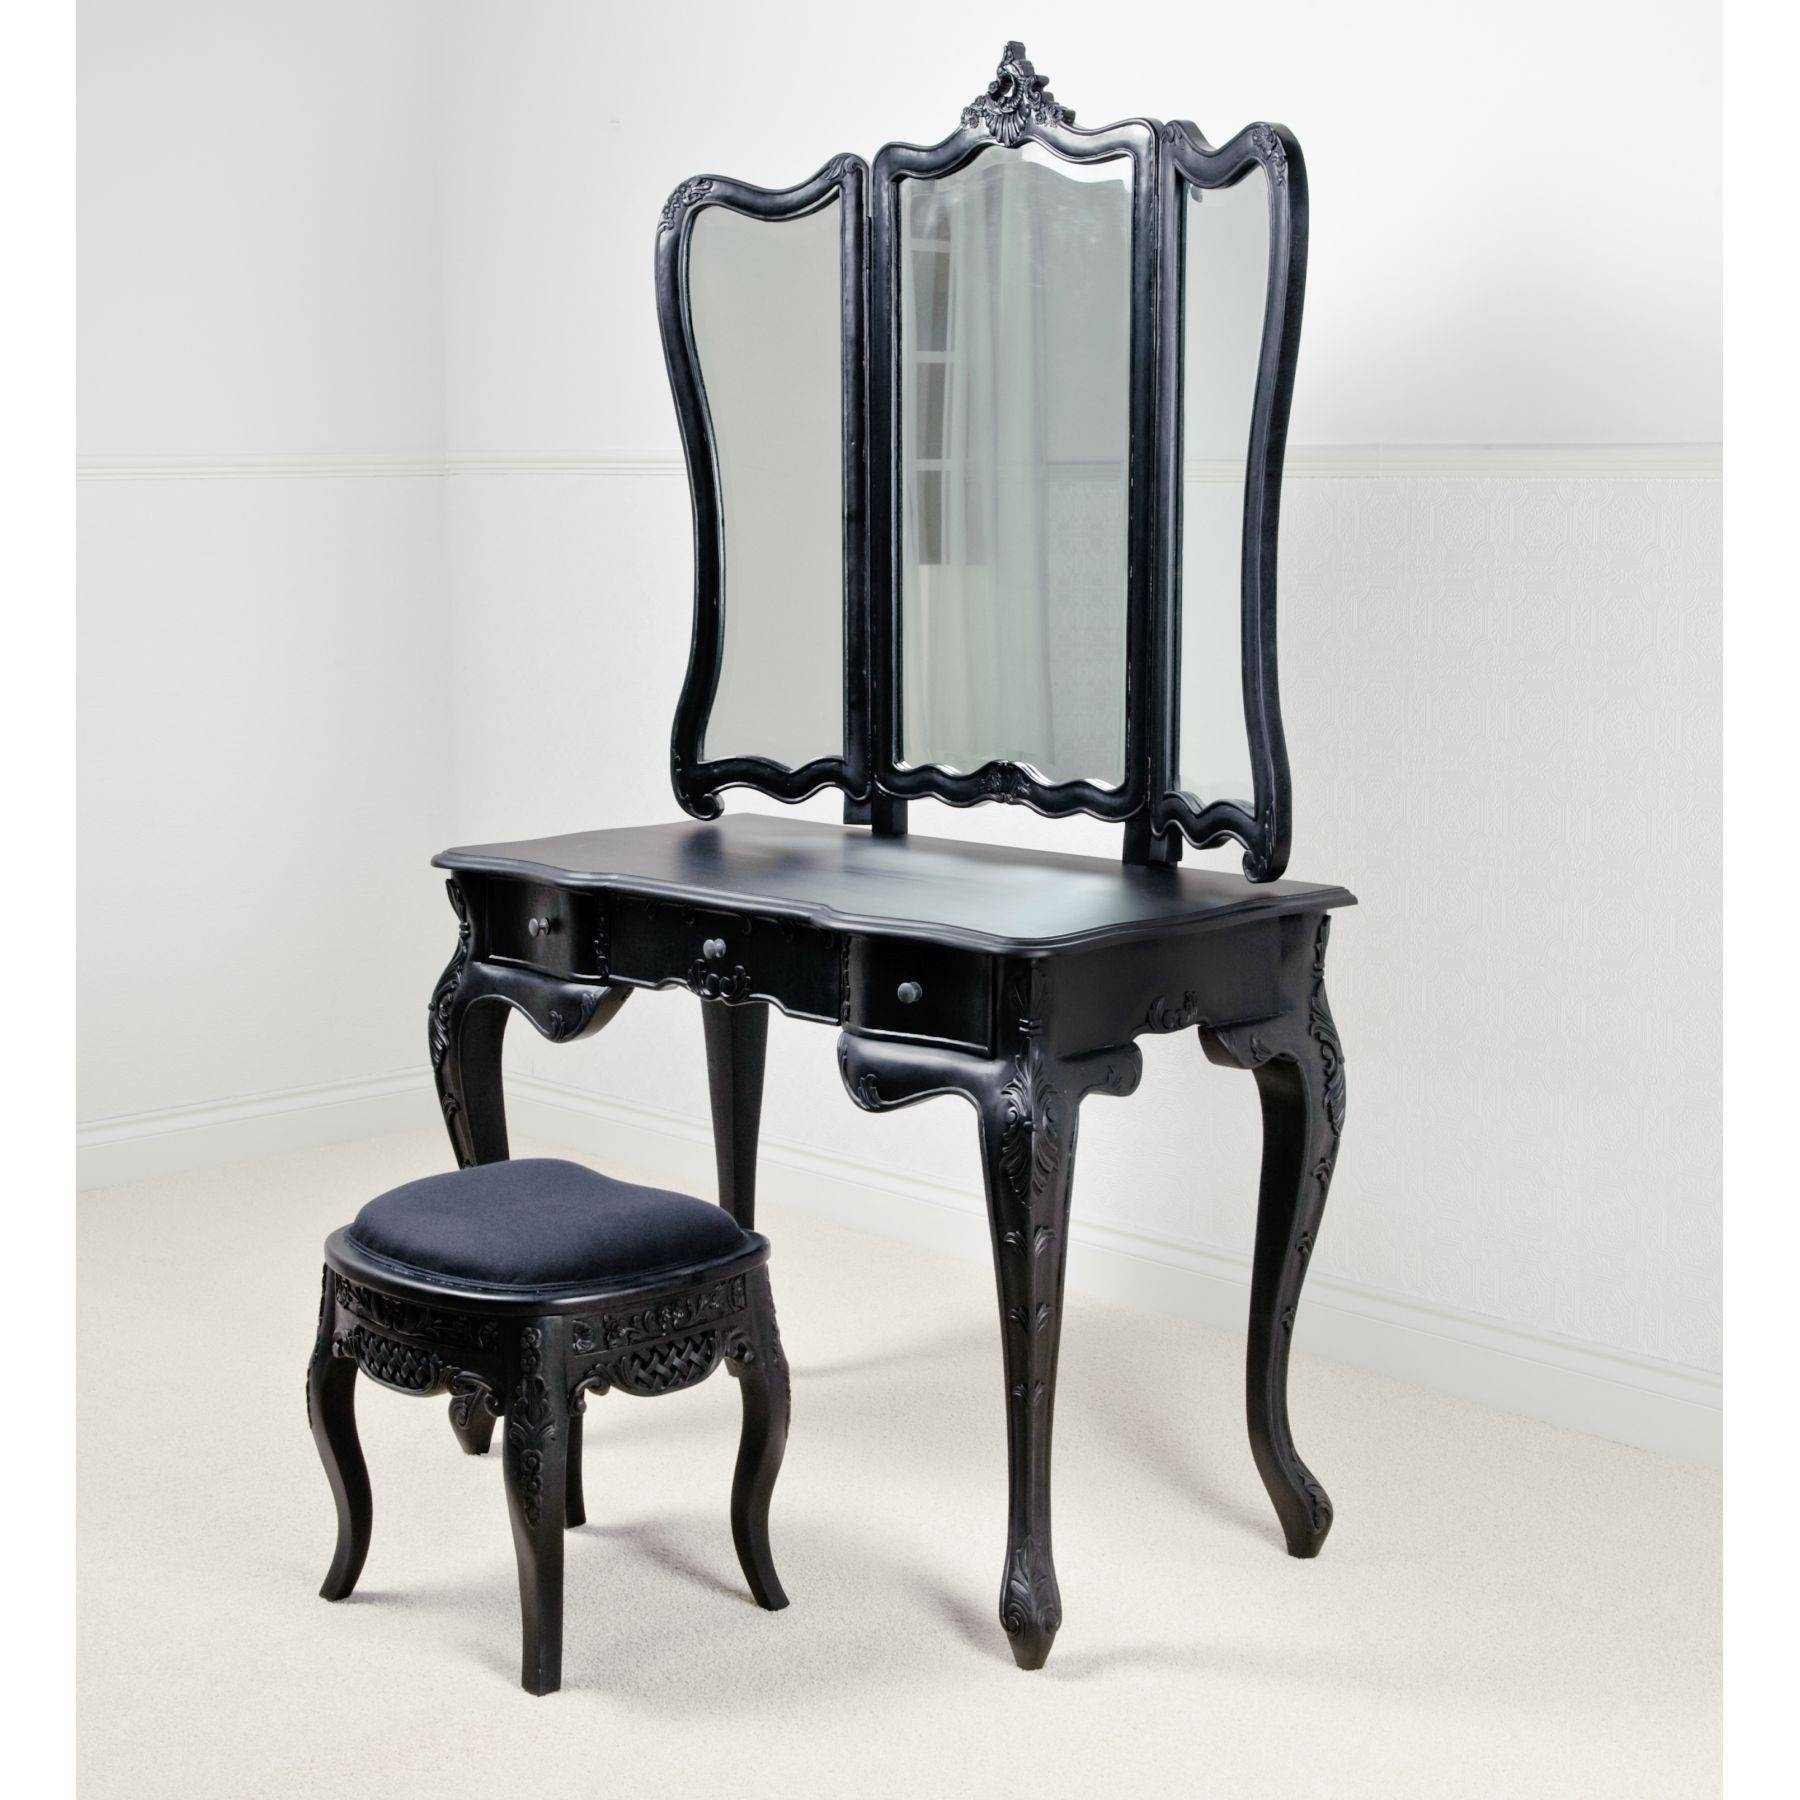 Black Dressing Table Mirror With Drawers | Creative Vanity Decoration within Black Dressing Mirrors (Image 8 of 25)